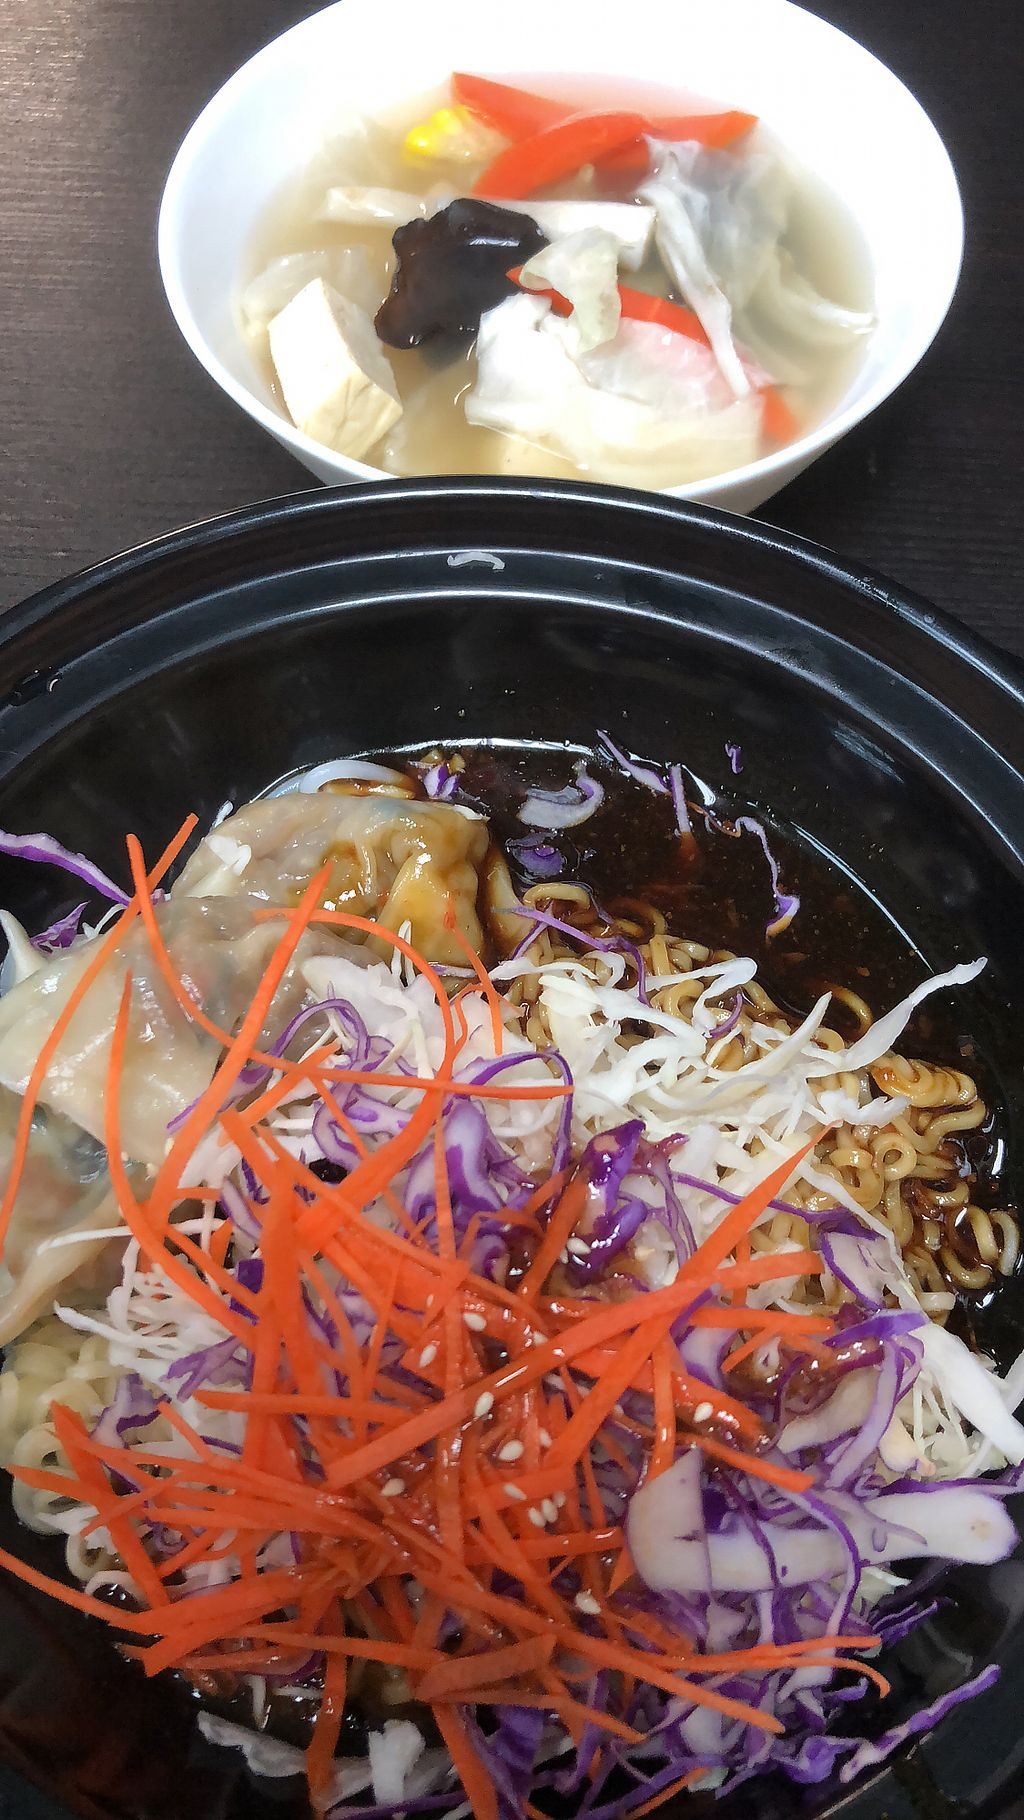 """Photo of CLOSED: Vegandeli  by <a href=""""/members/profile/AmyLeySzeThoo"""">AmyLeySzeThoo</a> <br/>Dry Dumpling Noodle <br/> March 16, 2018  - <a href='/contact/abuse/image/80167/371333'>Report</a>"""